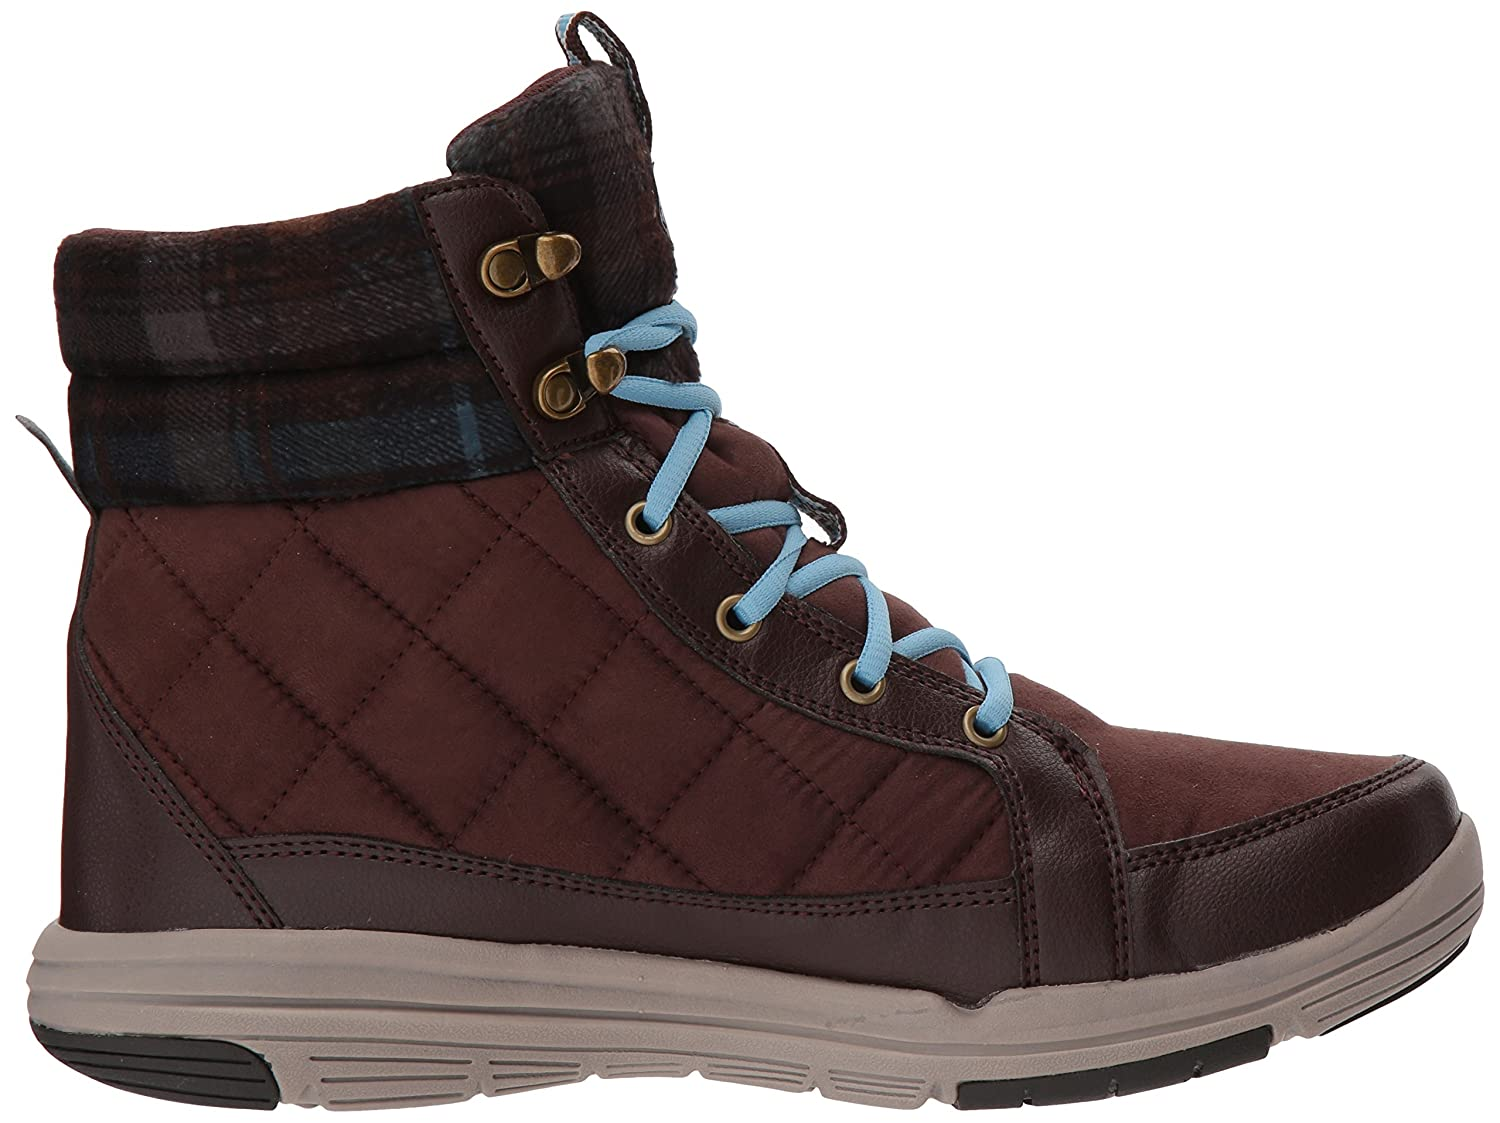 Ryka Women's Aurora Fashion Boot B0757NZYTN 11 W US|Roasted Chestnut/Nc Blue/Sidewalk